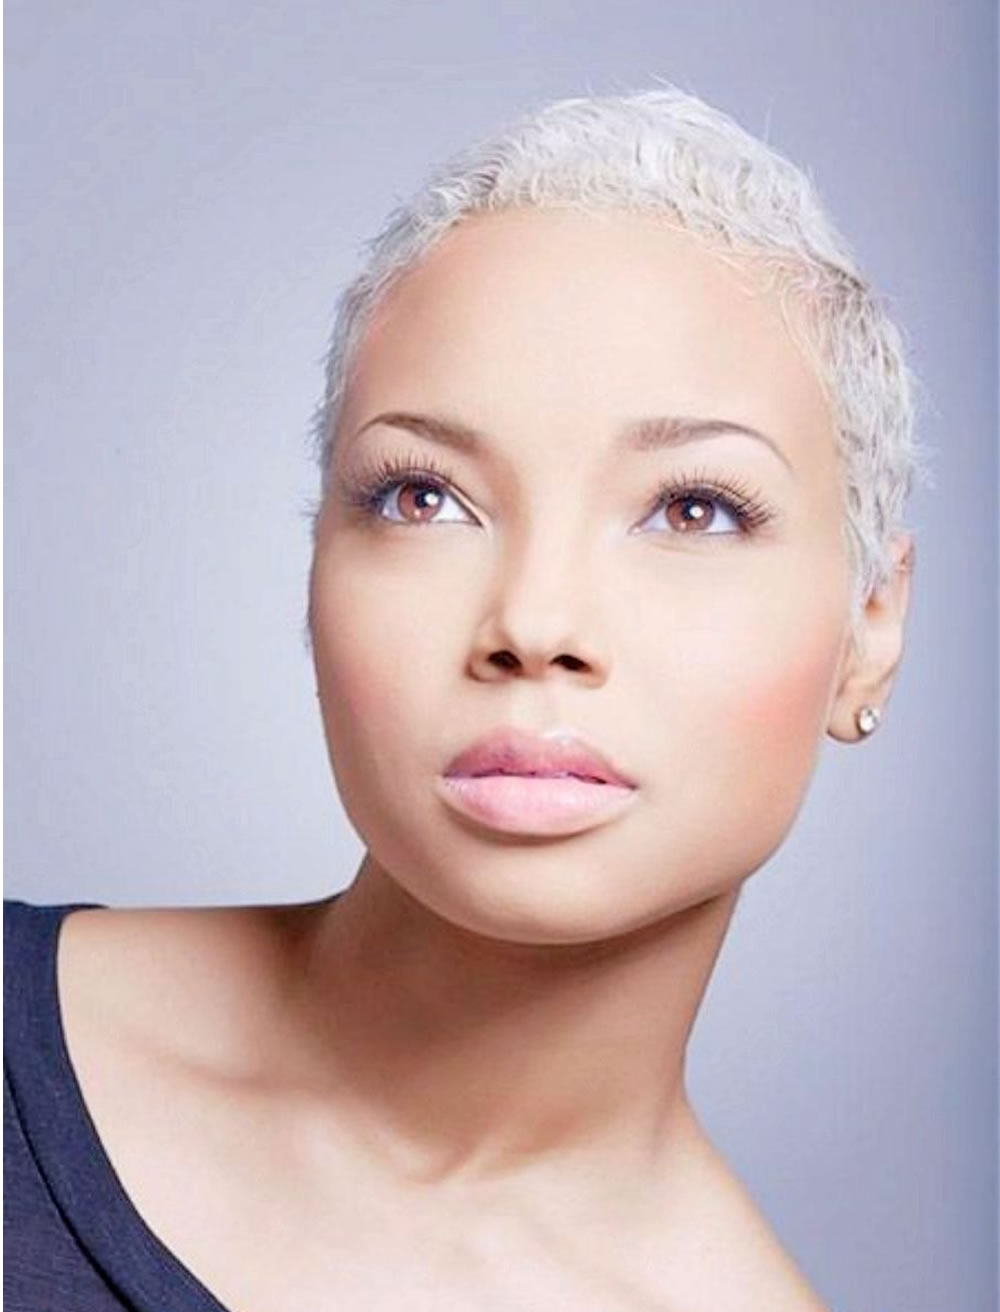 Grey Hair Color Very Short Pixie Haircut For Black Women 2017 Intended For Short Hairstyles For Black Women With Gray Hair (Gallery 12 of 25)